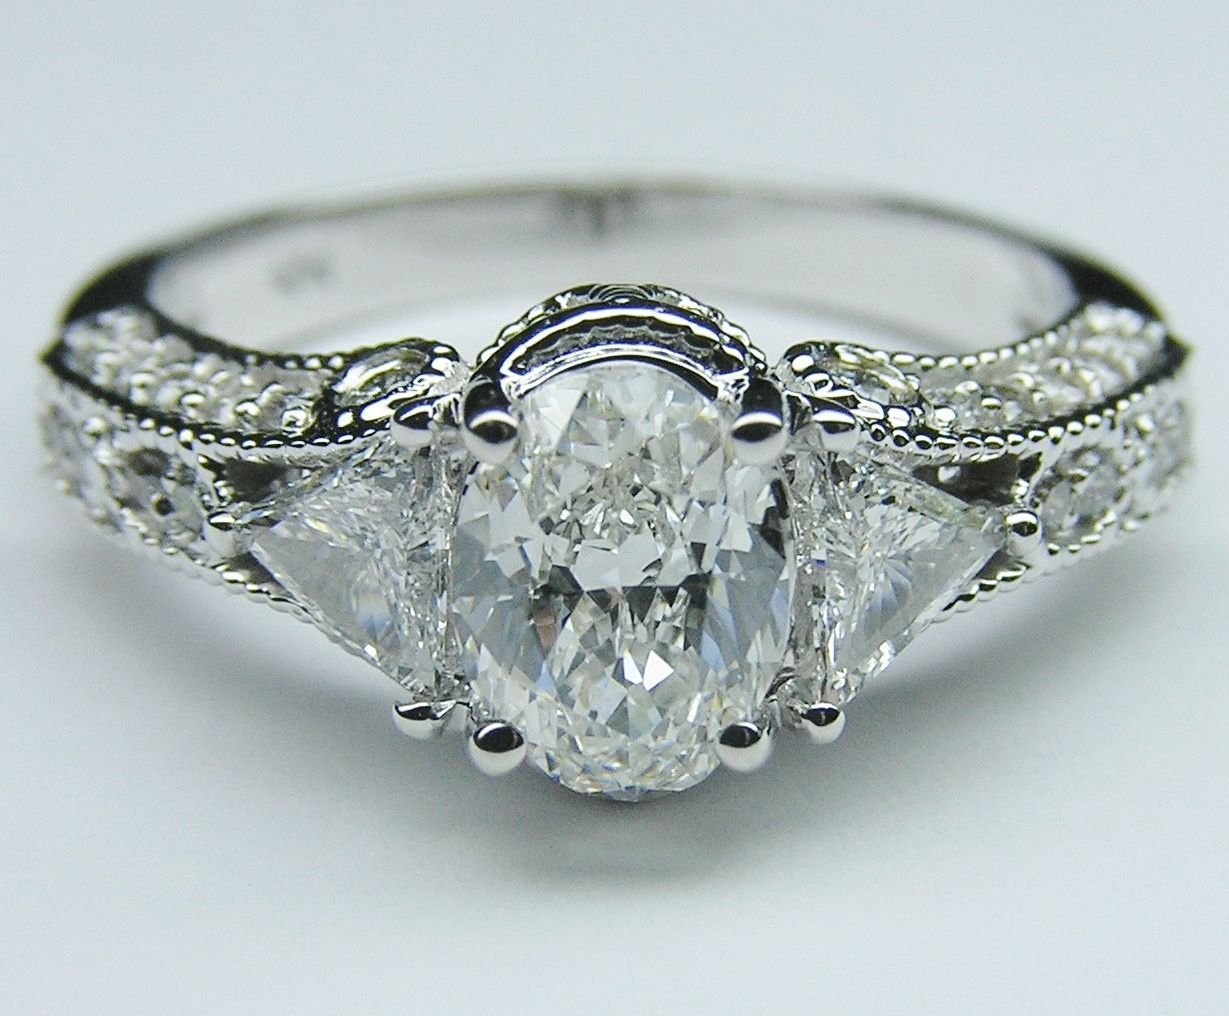 We looked at this one together vintage style oval diamond